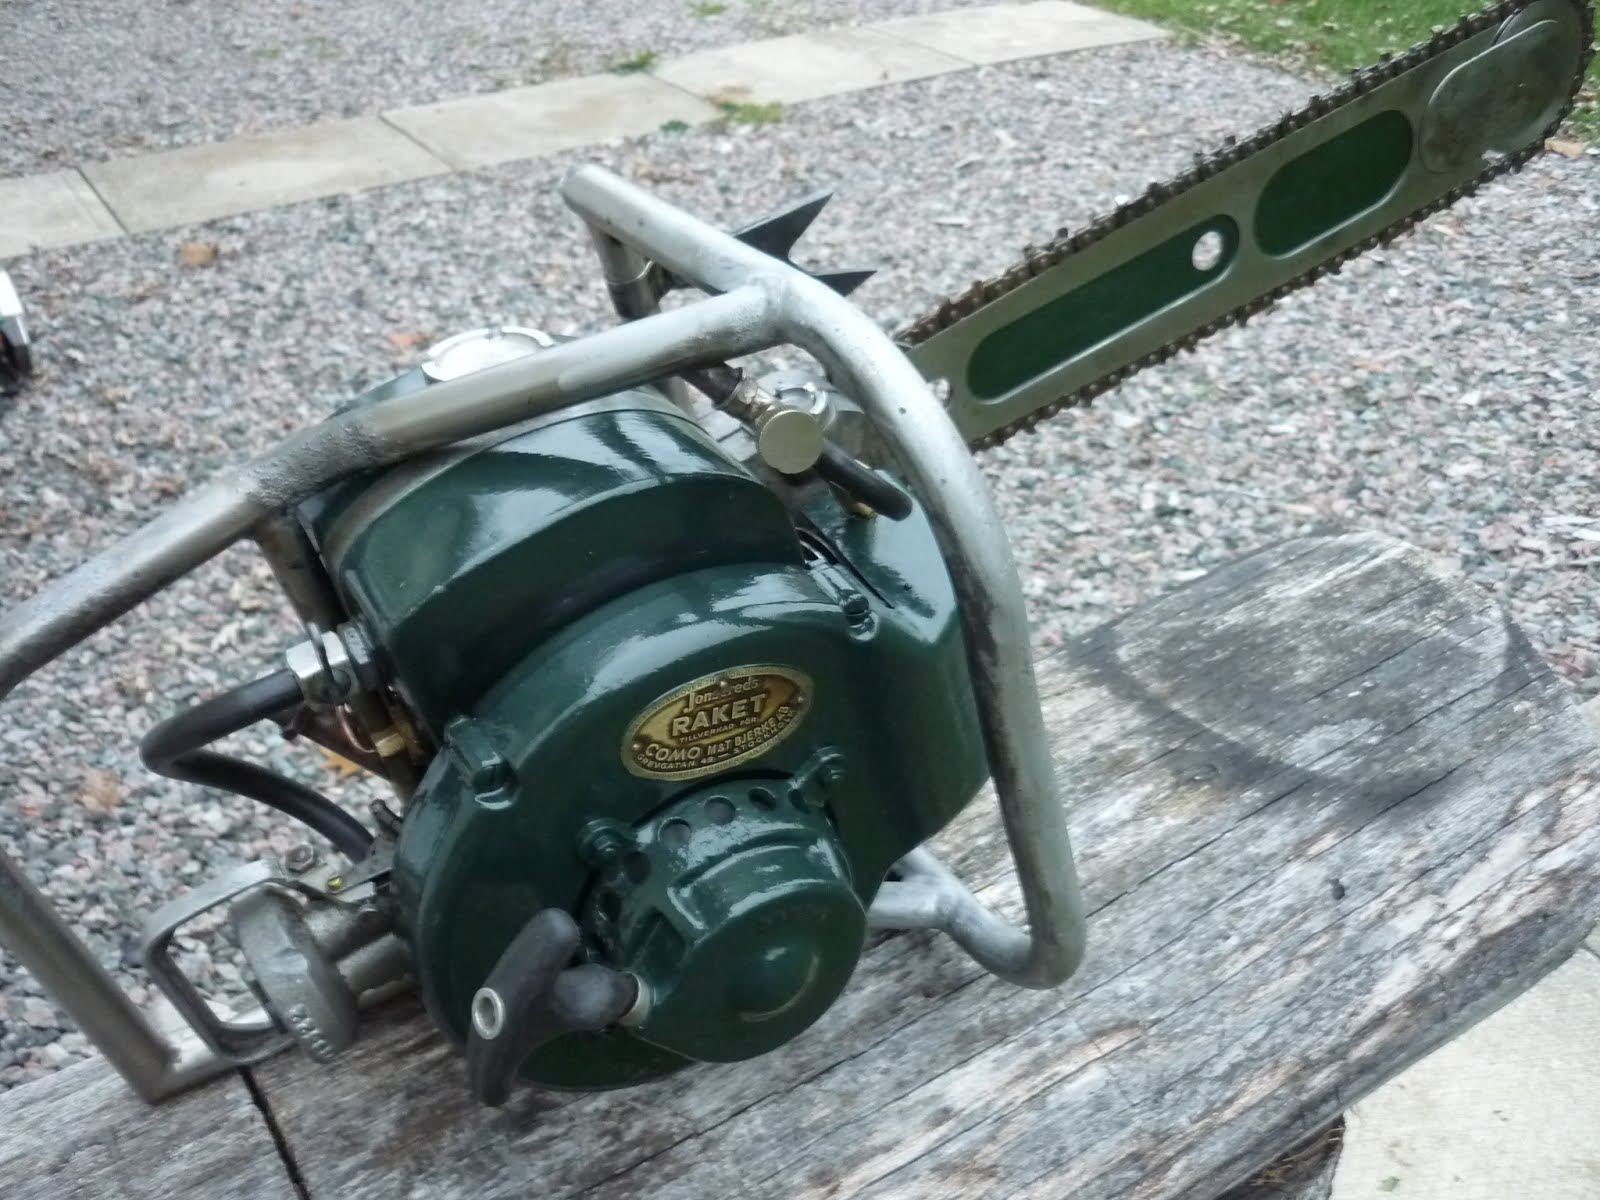 Jonsered Serial Number http://vintagechainsawcollection.blogspot.com/2012/11/jonsered-621-hotsaw-modified.html